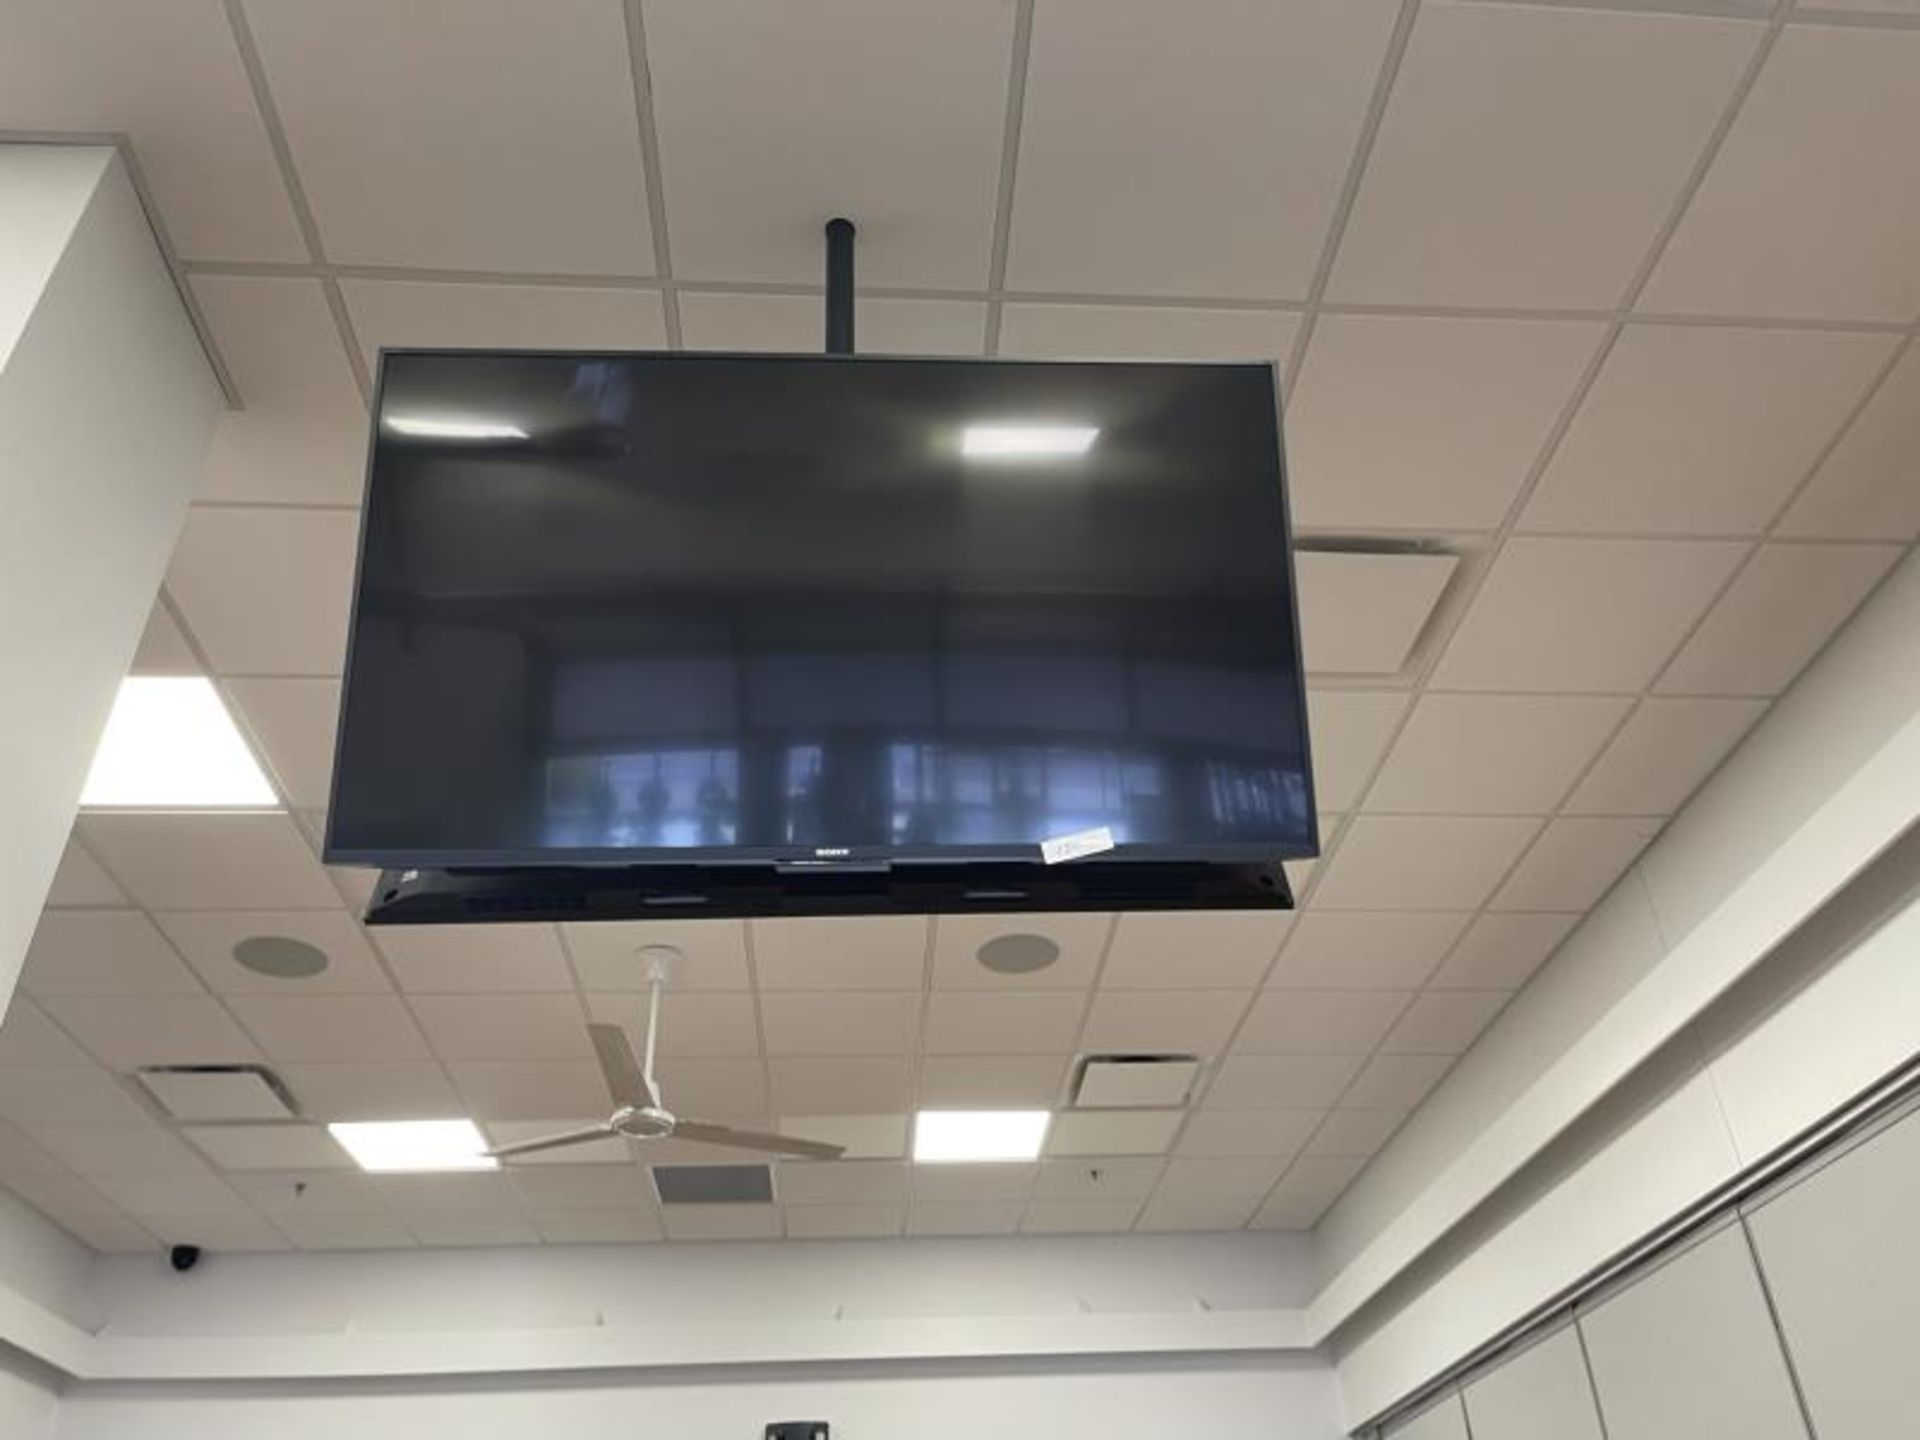 Lot of 2 Sony Flat Panel TV's, No Pole Mount, M: XBR-55X800E - Image 2 of 3